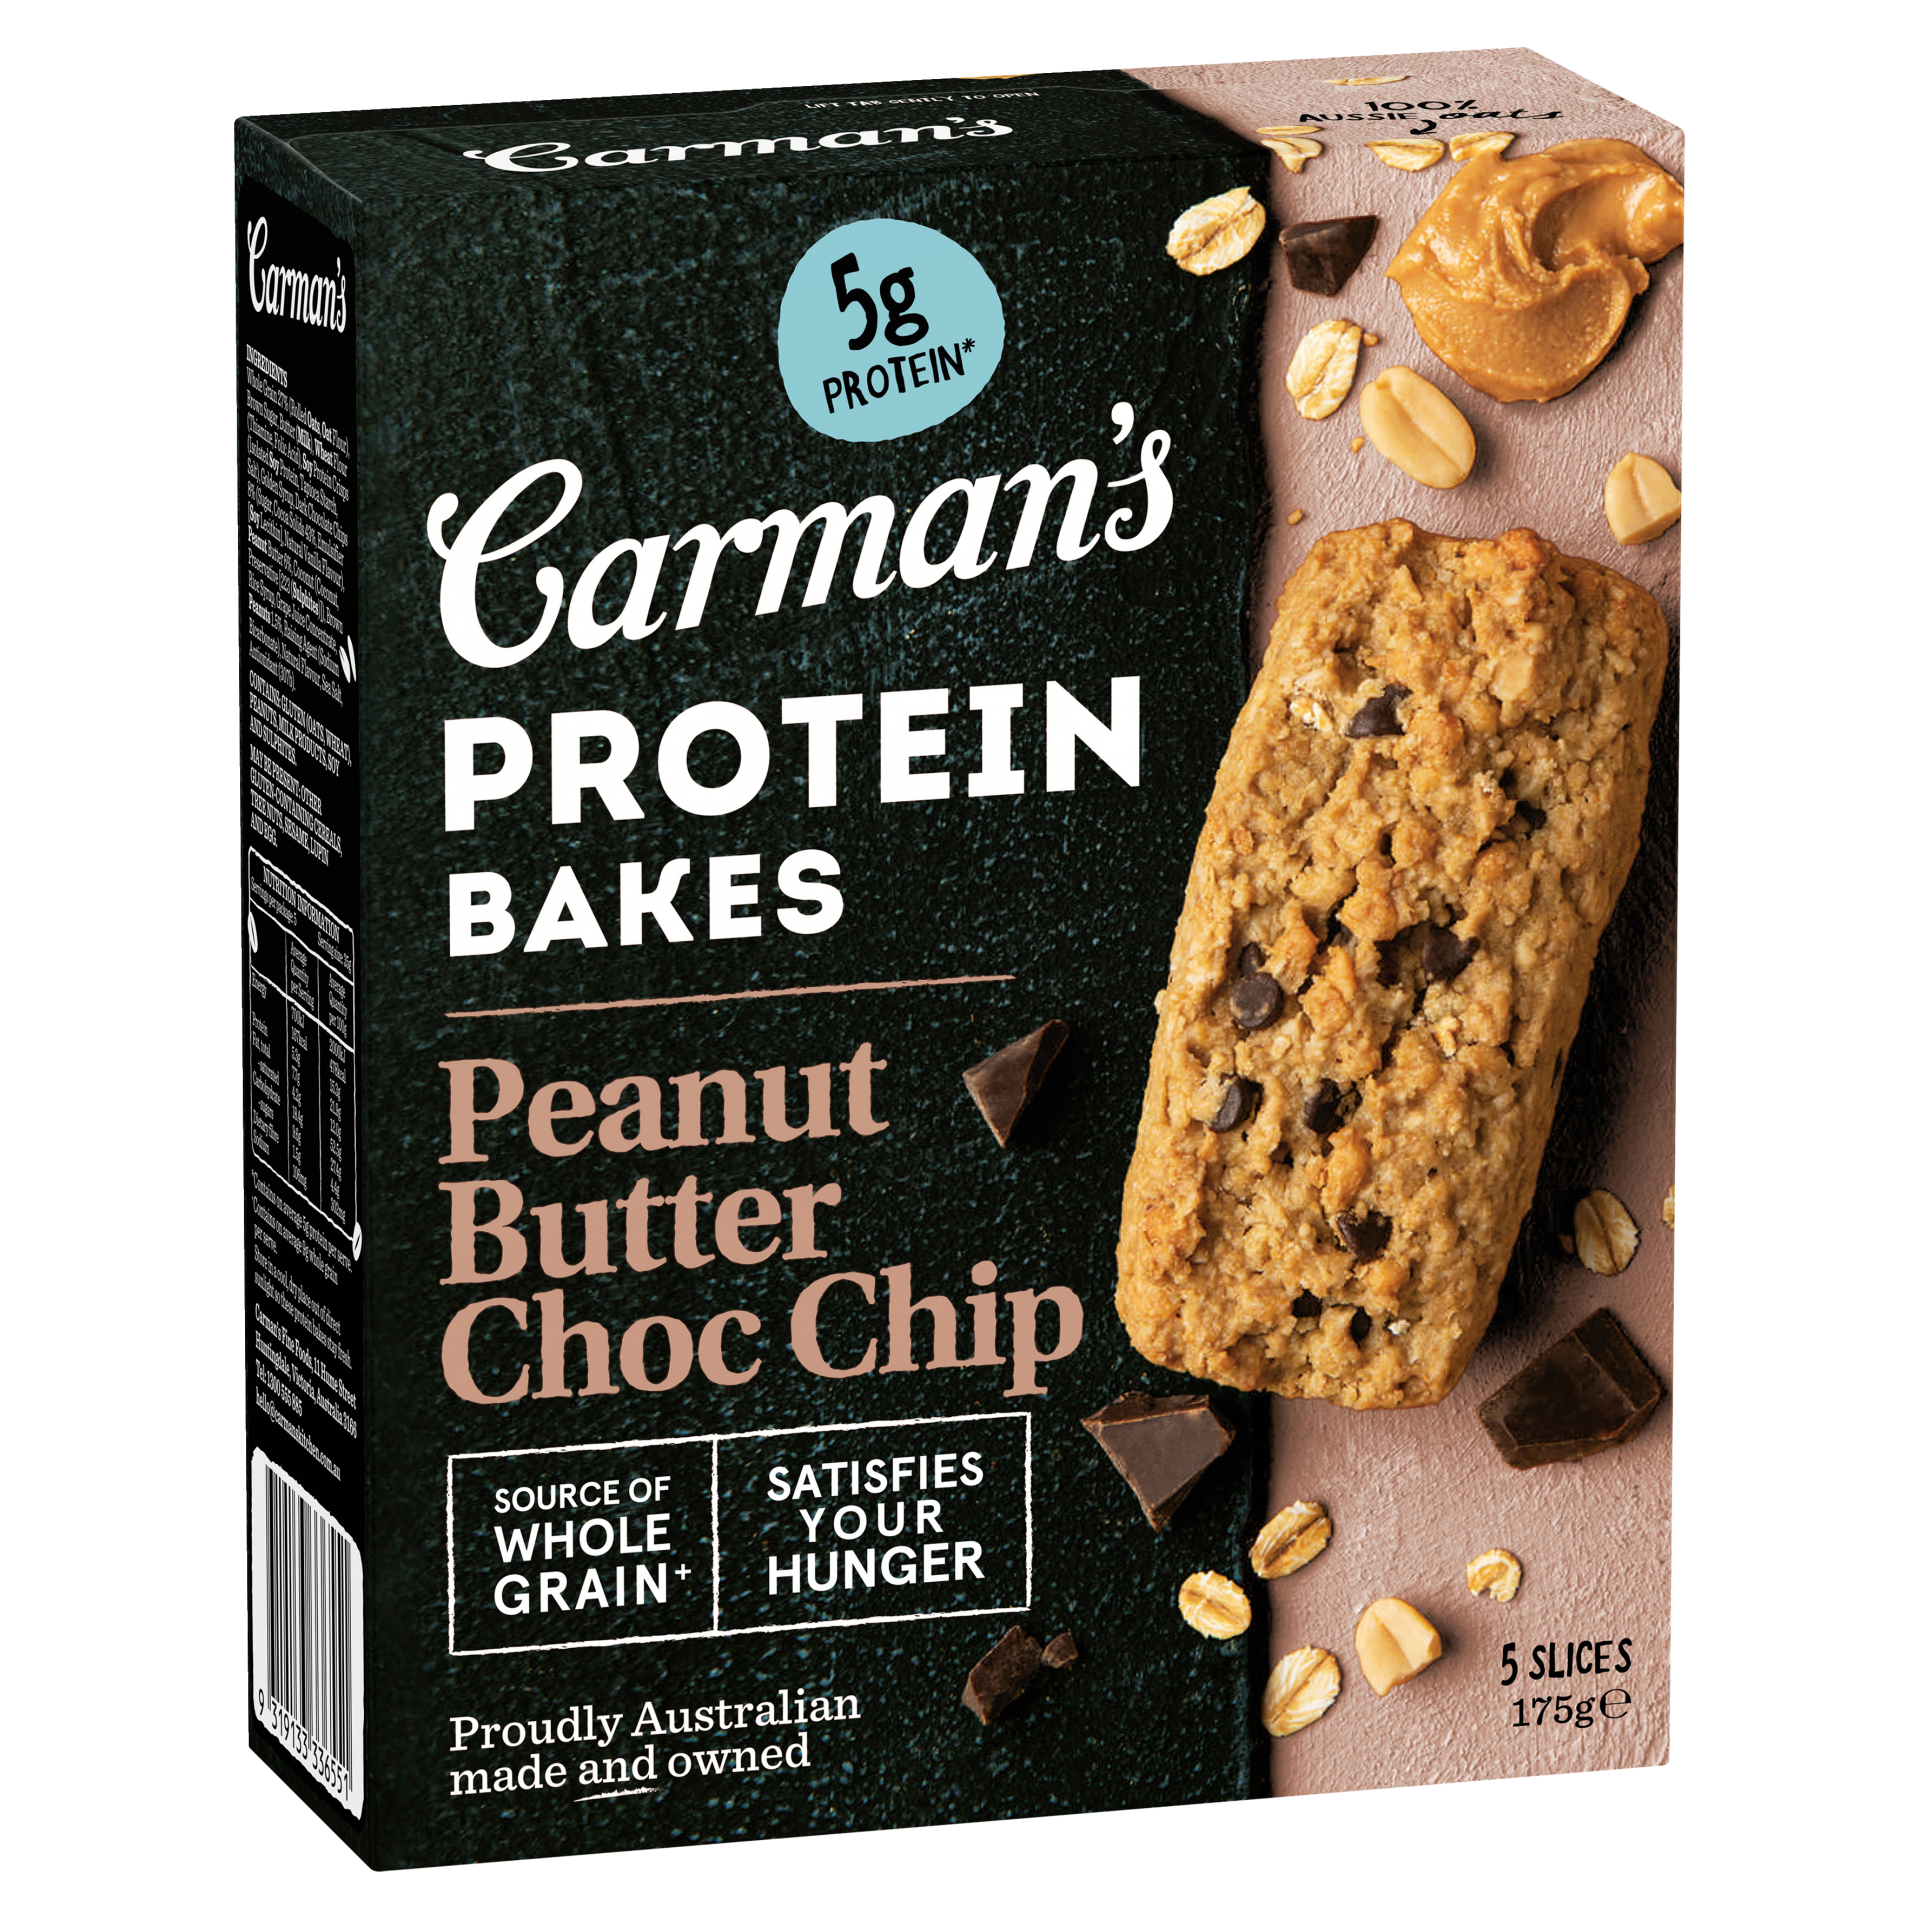 Peanut Butter Choc Chip Protein Bakes